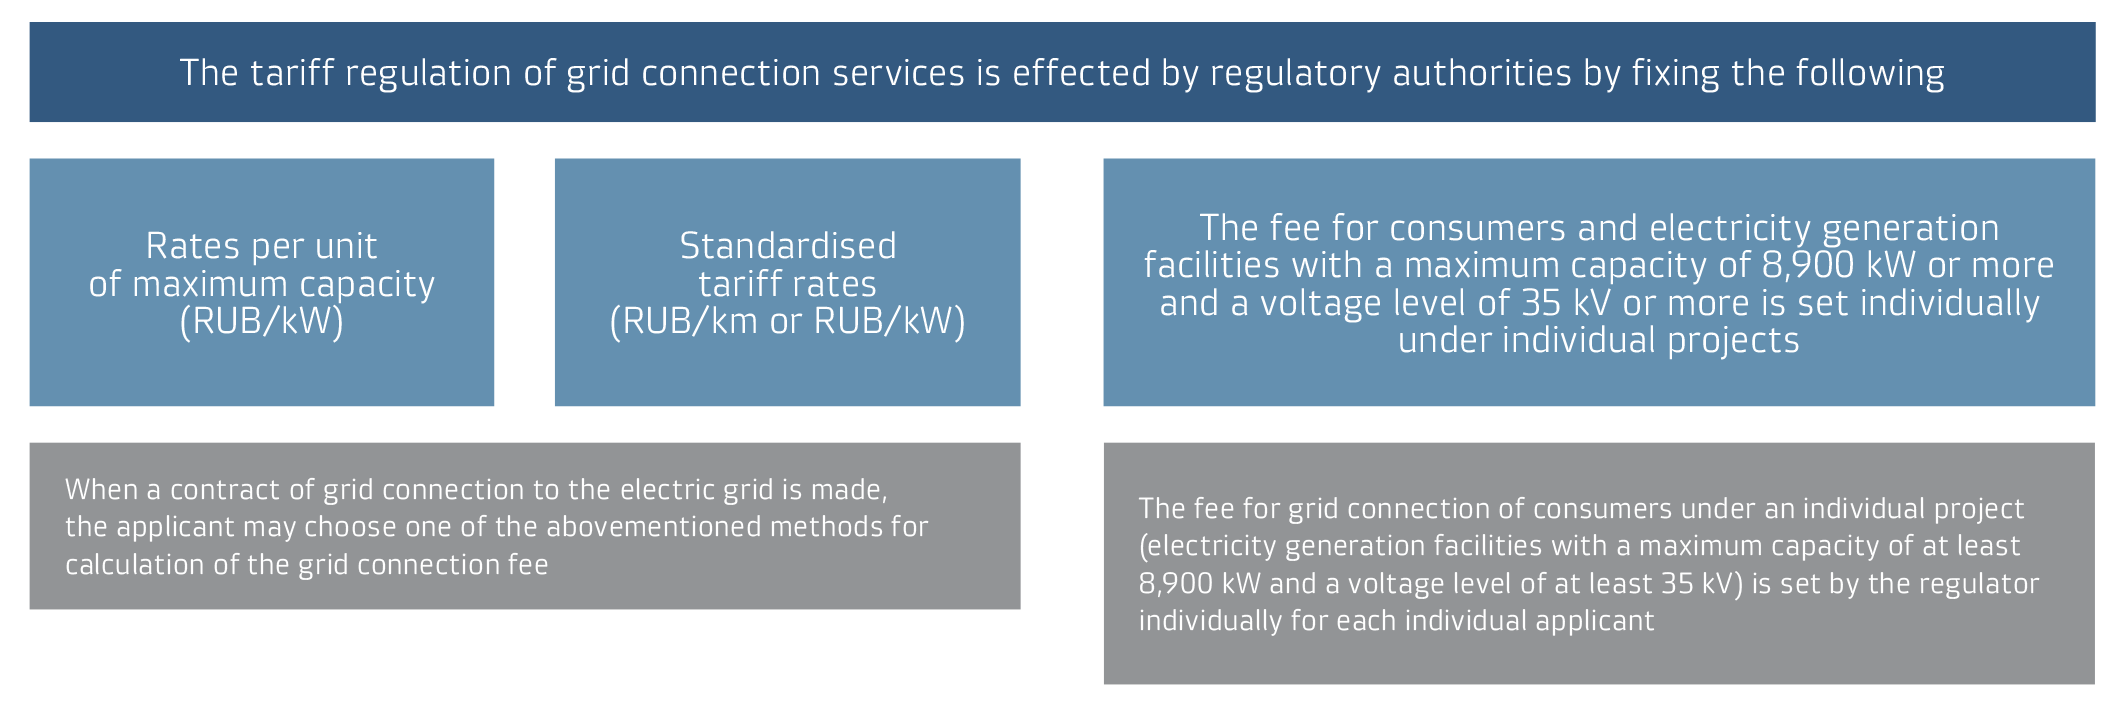 Tariffs for grid connection services